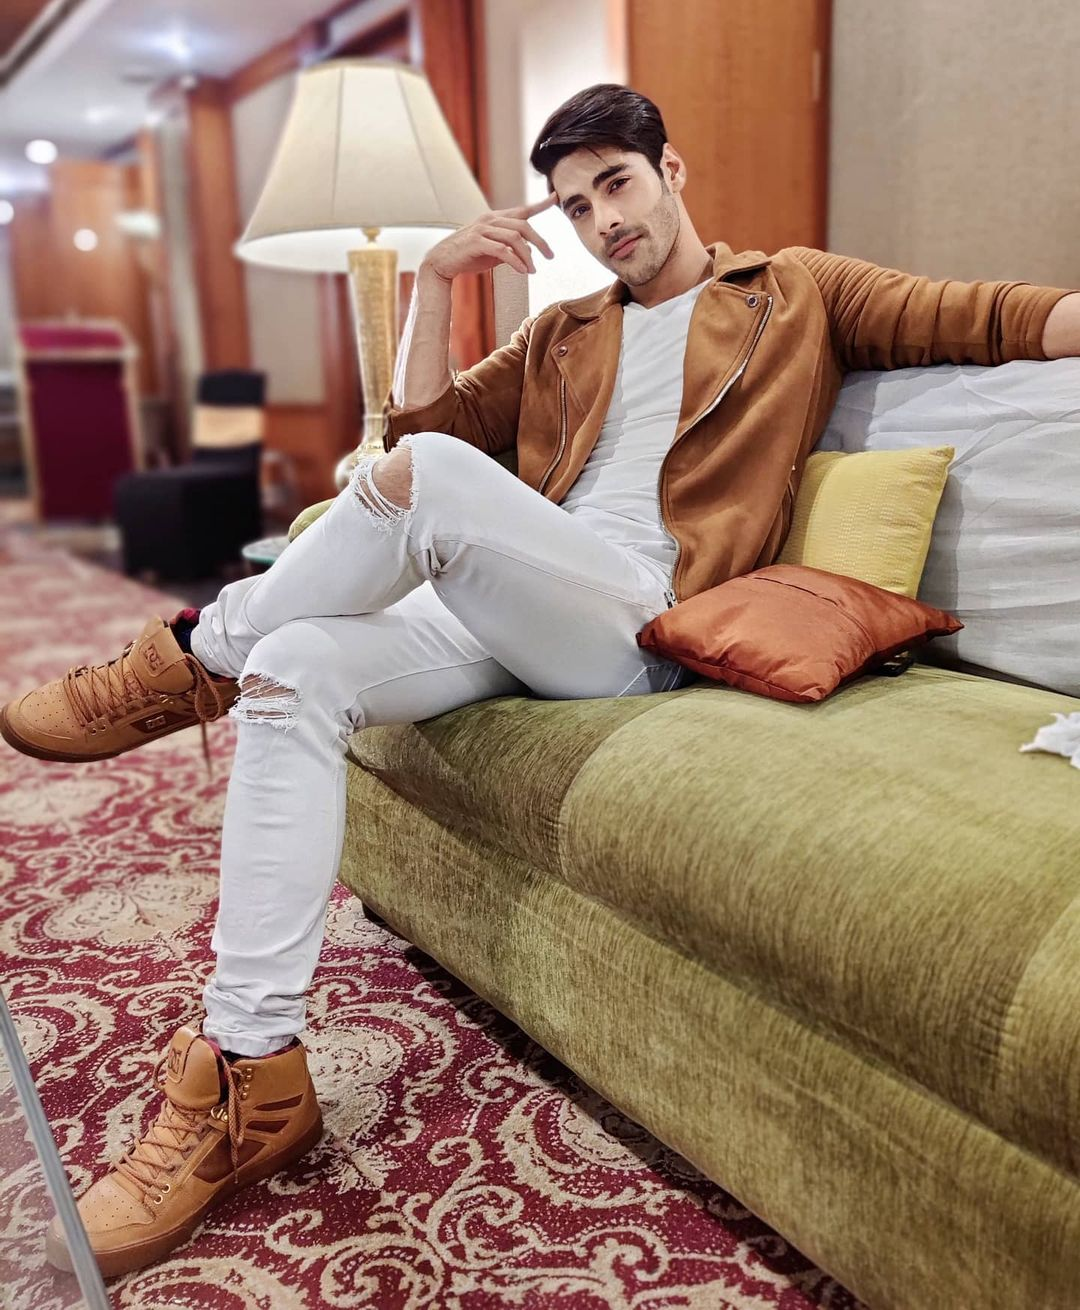 Simba Nagpal Biography, Age, Success Story, Girlfriend, Career, Body Measurements, Net Worth, Instagram, Family, and Education